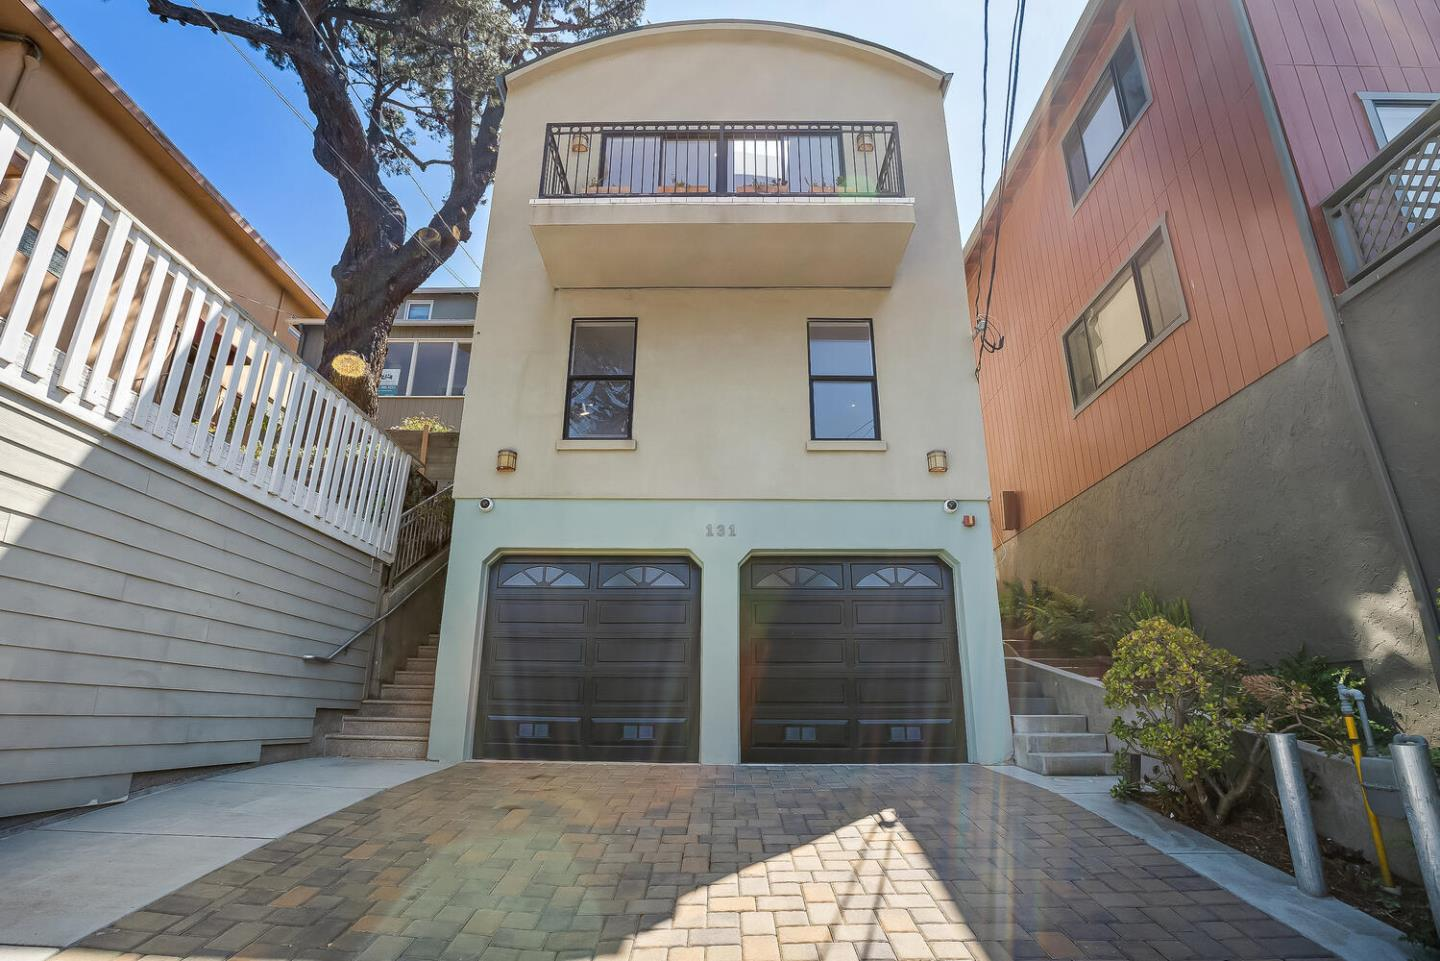 Modern Luxury Living: 3b3b single family home with views of San Bruno Mt. and built new in 2005.  Stunning main level open floor plan and great room with 15' high barrel ceilings and solid oak hardwood floors.  Gourmet Kitchen with granite counter tops, eat-in island and bar. Thermador stainless steel appliances: gas range and separate built-in double ovens. Separate dining room with sliding door to rear backyard.  This home features two balconies, a zen garden and patio,  an elevator, recessed lighting,  custom tile, fire sprinklers, 2 laundry areas, attached 2 car garage, storage rooms and an abundance of natural light. Gorgeously Oversized Master Suite with balcony, high ceilings, steam mist in shower, separate soaker tub and walk-in closet. Lower level boasts 2b , laundry room,  bathroom, and interior stairs to garage.